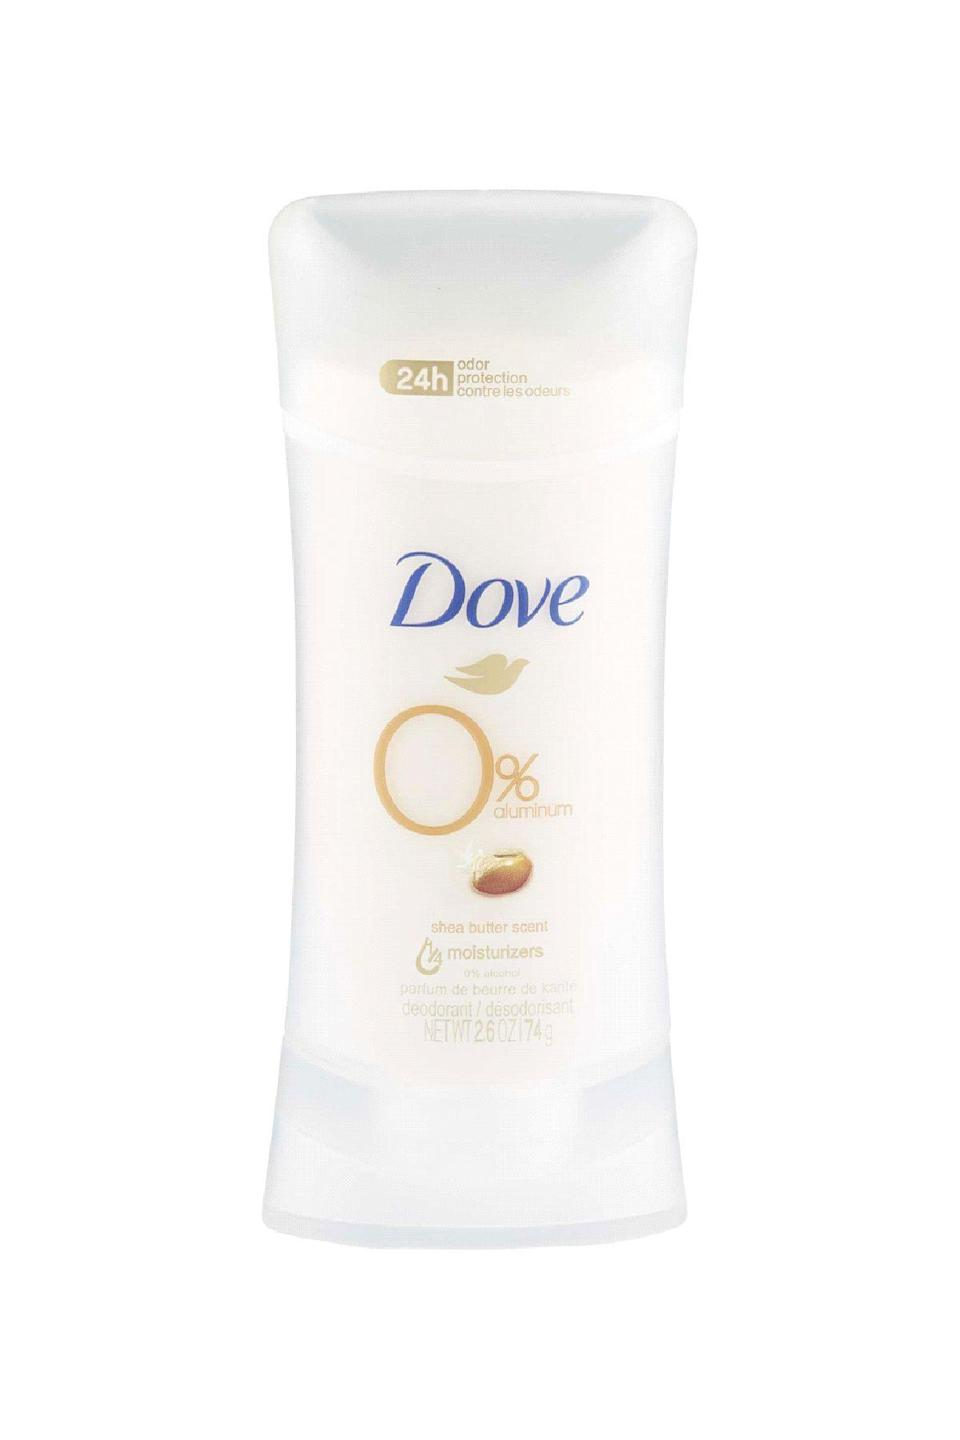 "<p><strong>Dove</strong></p><p>walmart.com</p><p><strong>$5.97</strong></p><p><a href=""https://go.redirectingat.com?id=74968X1596630&url=https%3A%2F%2Fwww.walmart.com%2Fip%2F806895923&sref=https%3A%2F%2Fwww.marieclaire.com%2Fbeauty%2Fg36081134%2Fbest-deodorant-for-women%2F"" rel=""nofollow noopener"" target=""_blank"" data-ylk=""slk:SHOP IT"" class=""link rapid-noclick-resp"">SHOP IT</a></p><p>""This deodorant helps mask body odor without causing irritation to the skin. It contains the same types of hydrating ingredients found in traditional moisturizer, making it useful even in people who have sensitive skin,"" says New York City dermatologist Joshua Zeichner. It's also an easy-to-fine, deeply affordable aluminum-free option. </p>"